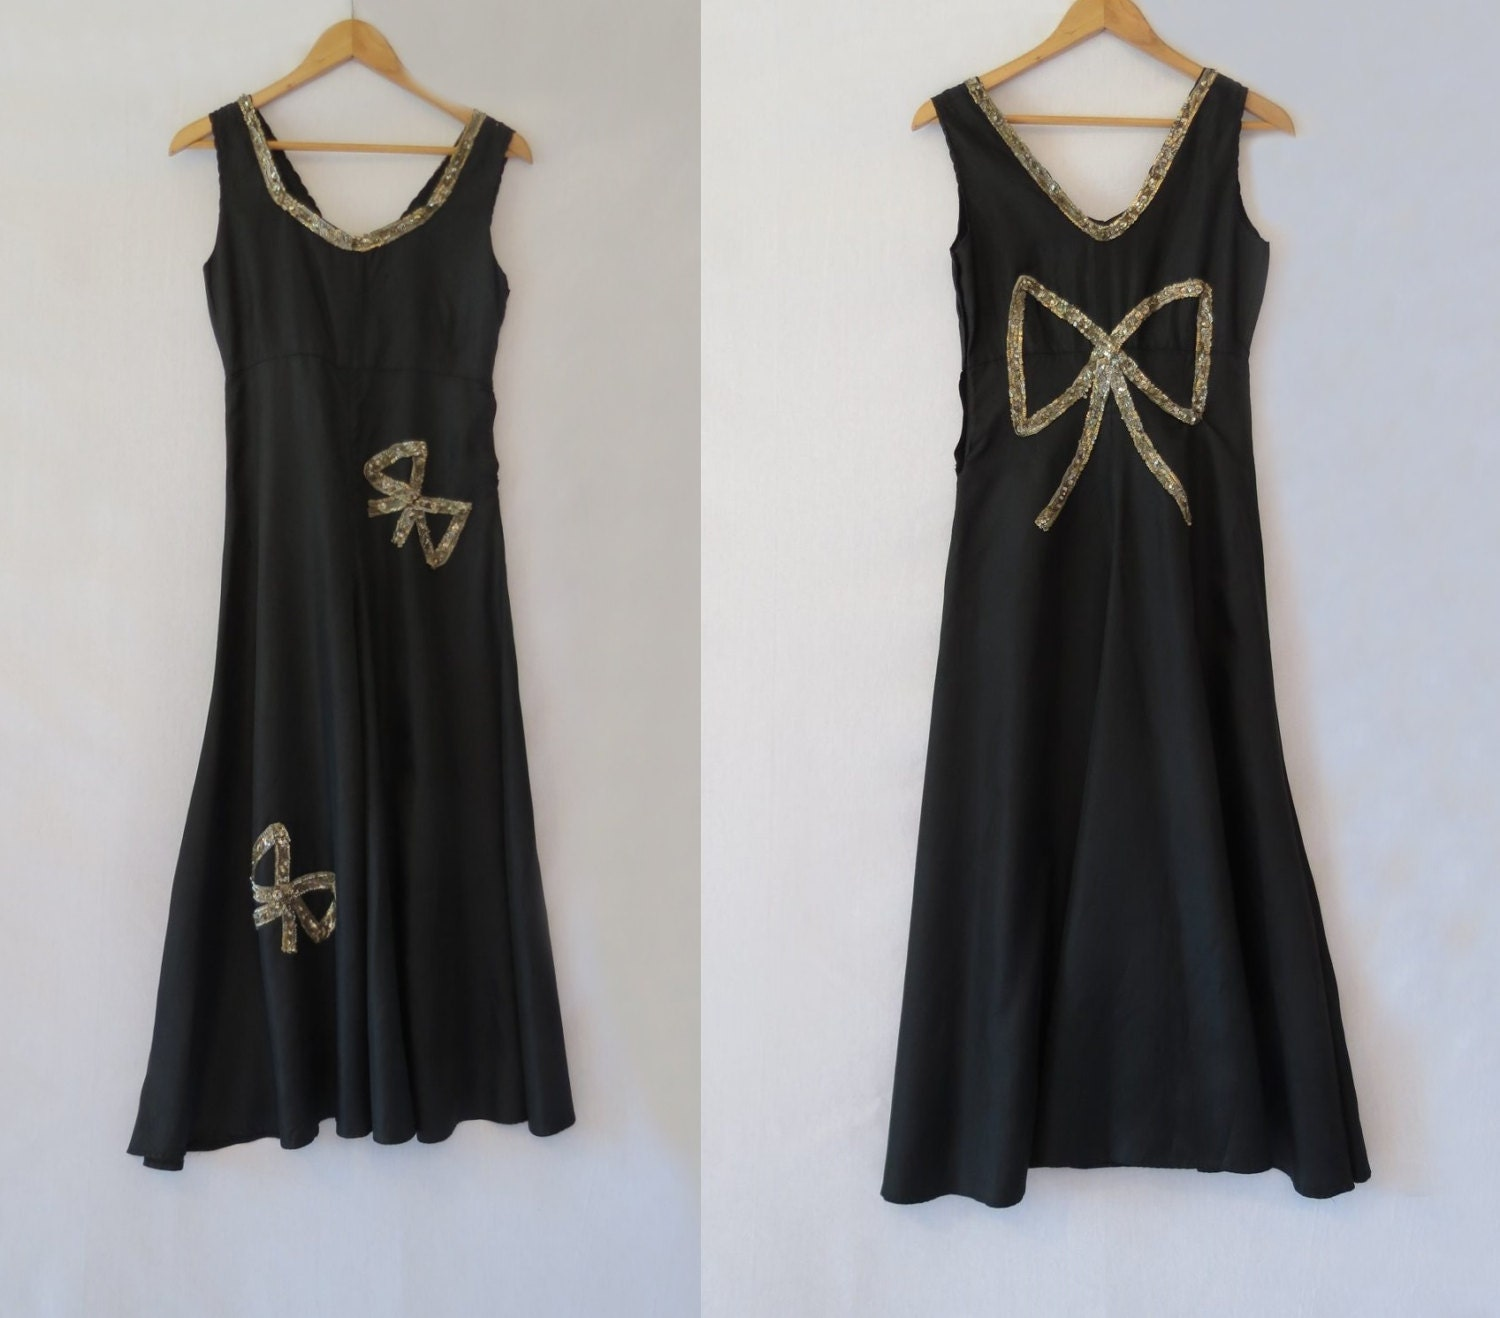 1930s Evening Dress or Formal Black Dress With Sequinned ...